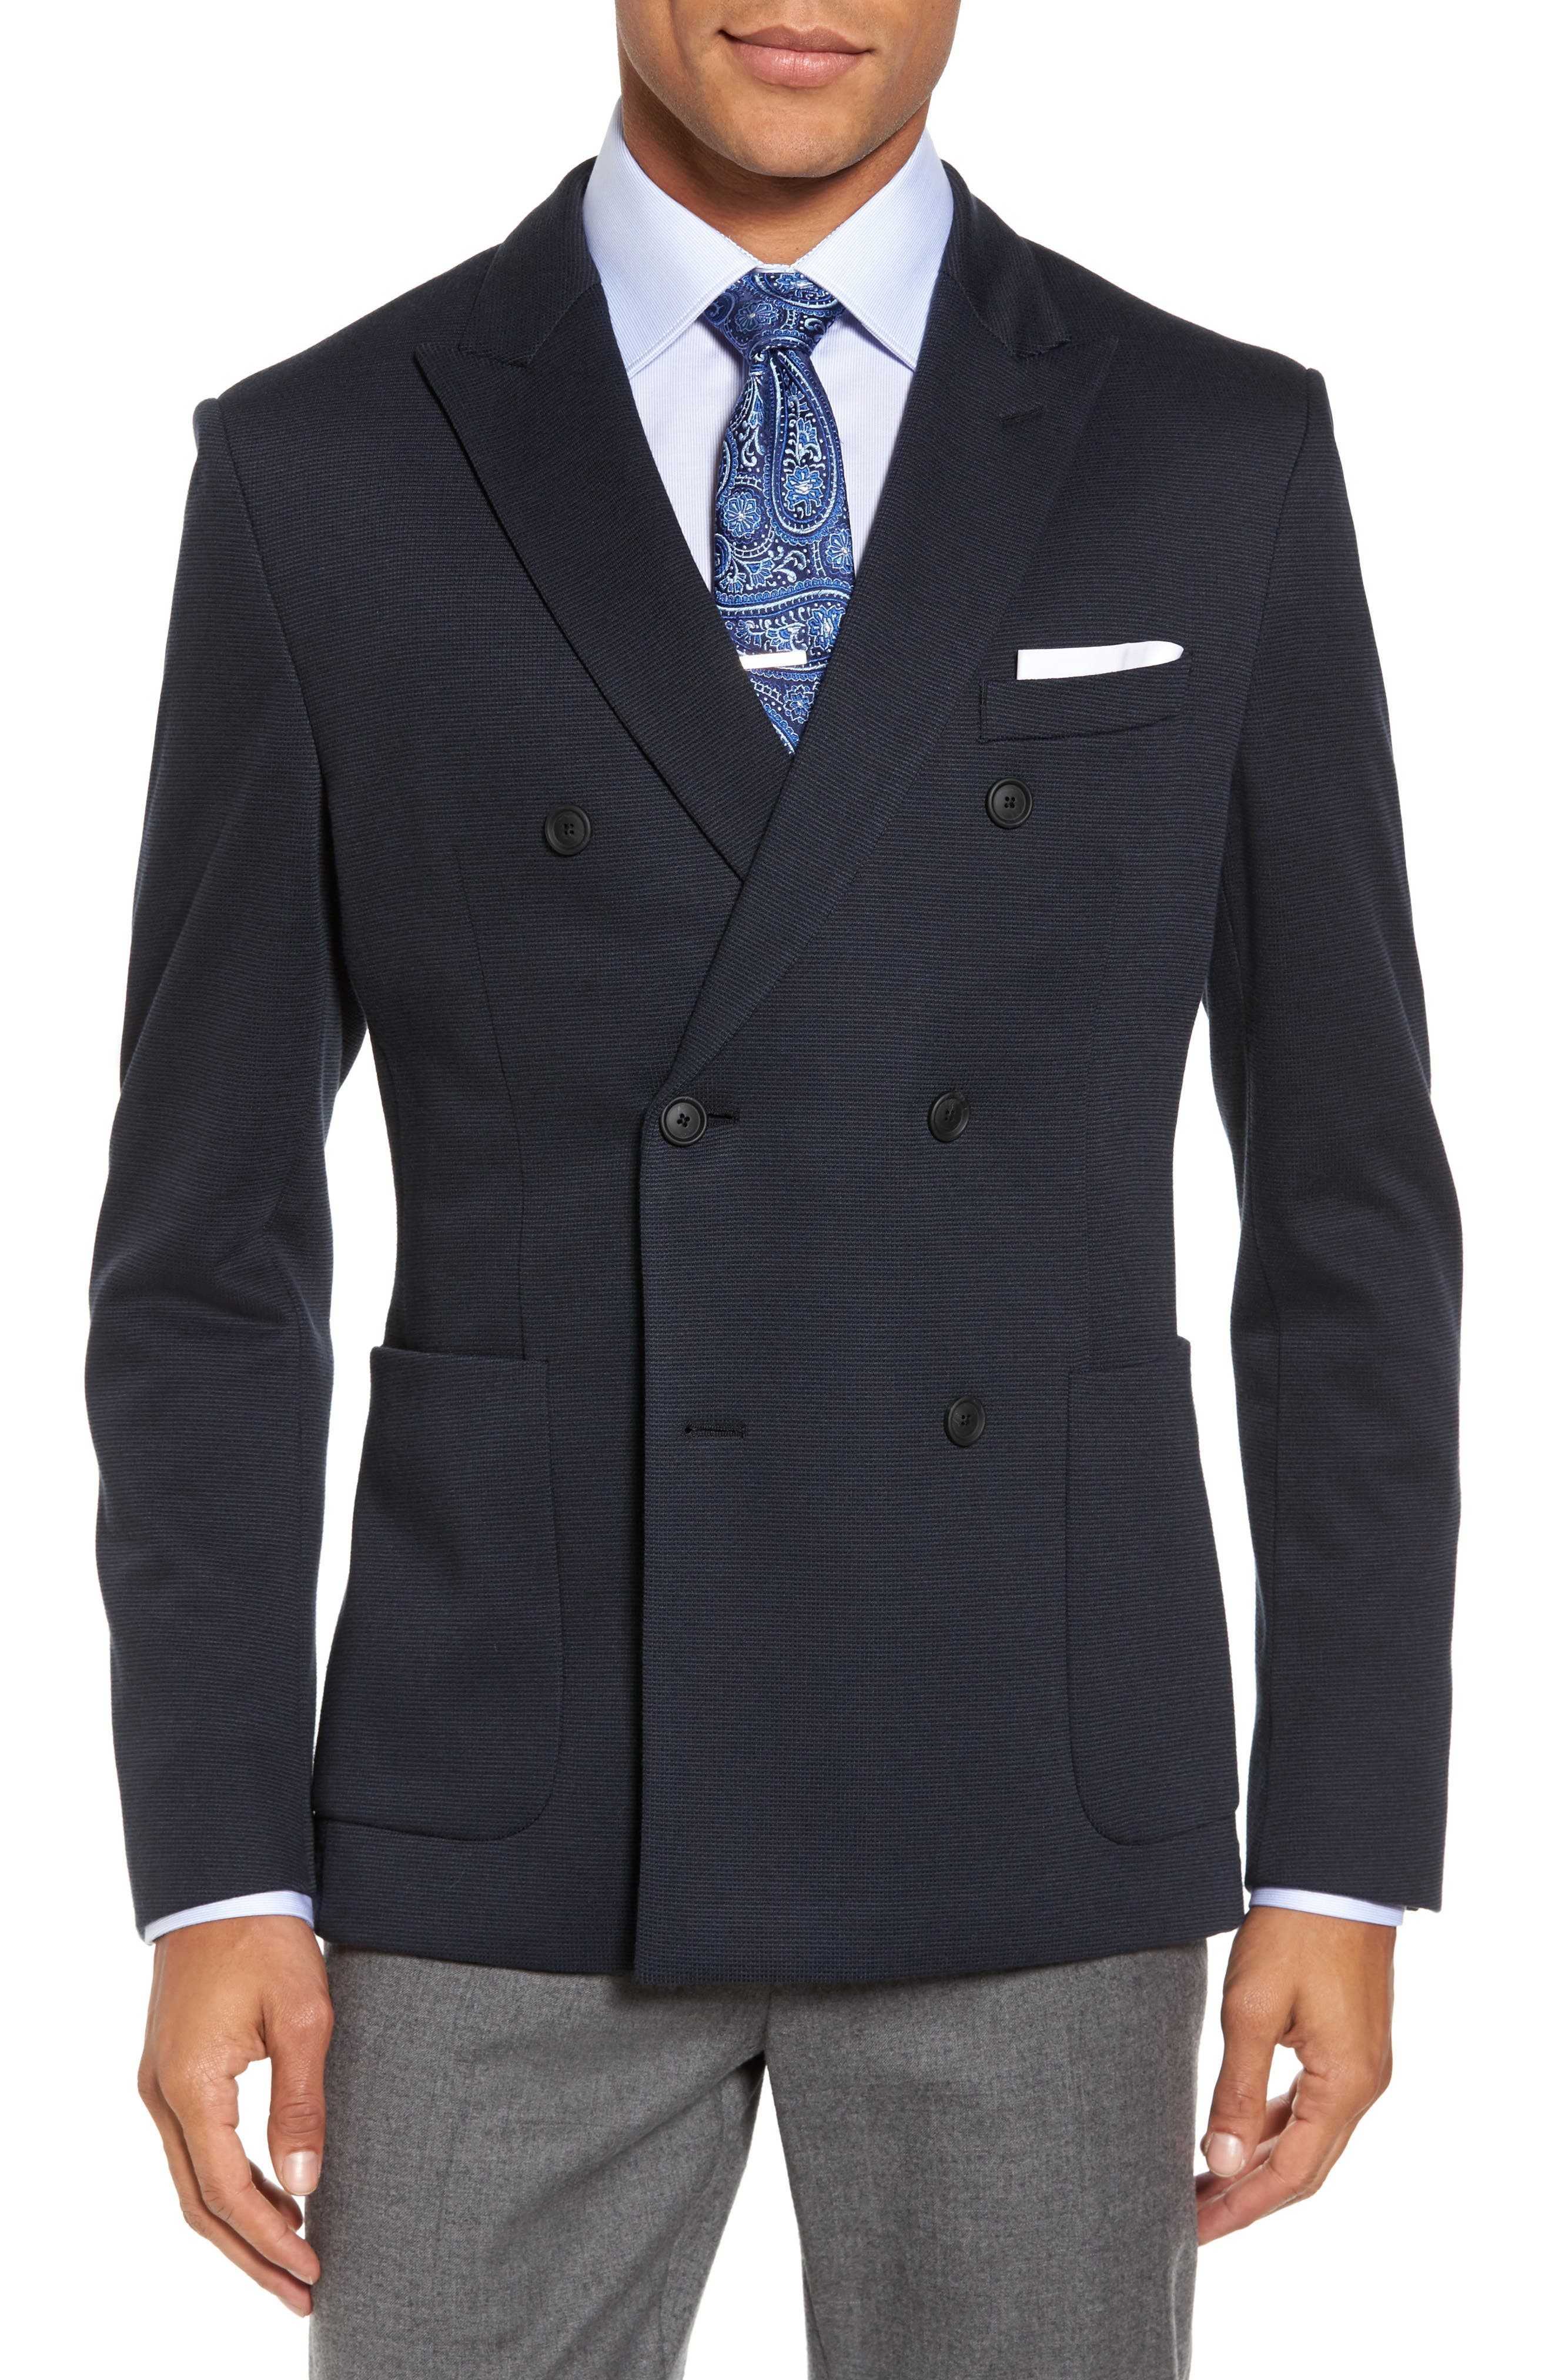 Nayler-J Trim Fit Double-Breasted Blazer,                             Main thumbnail 1, color,                             Navy